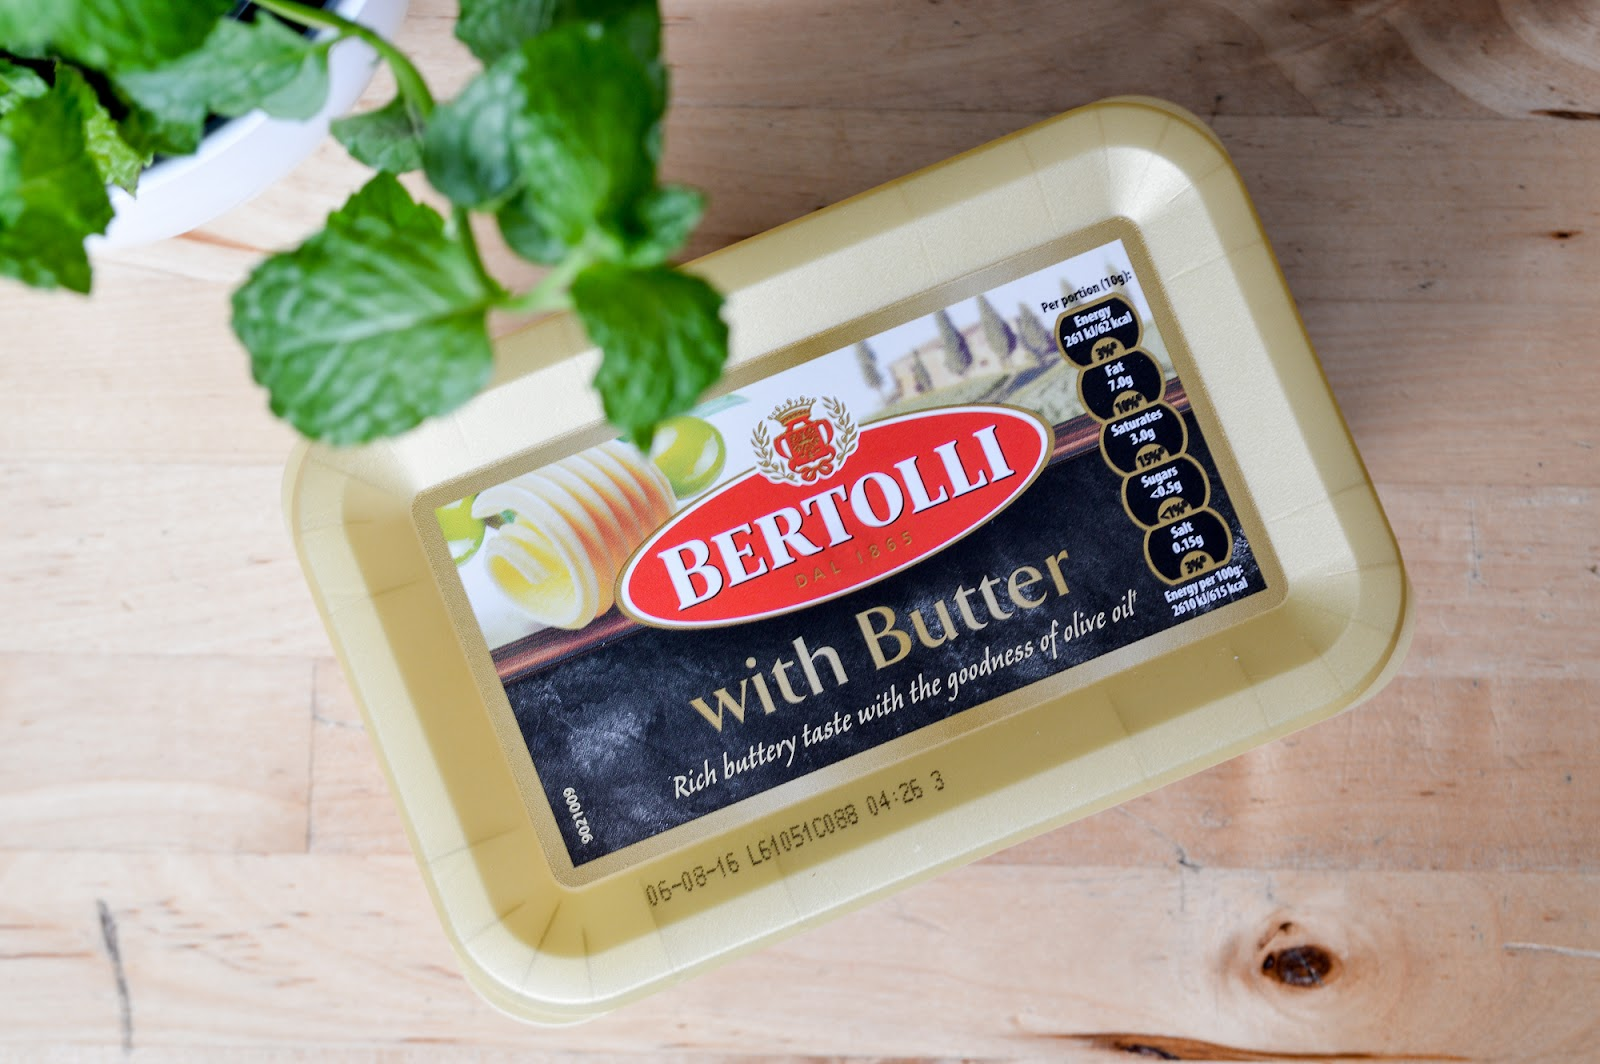 Bertolli with Butter Gingey Bites